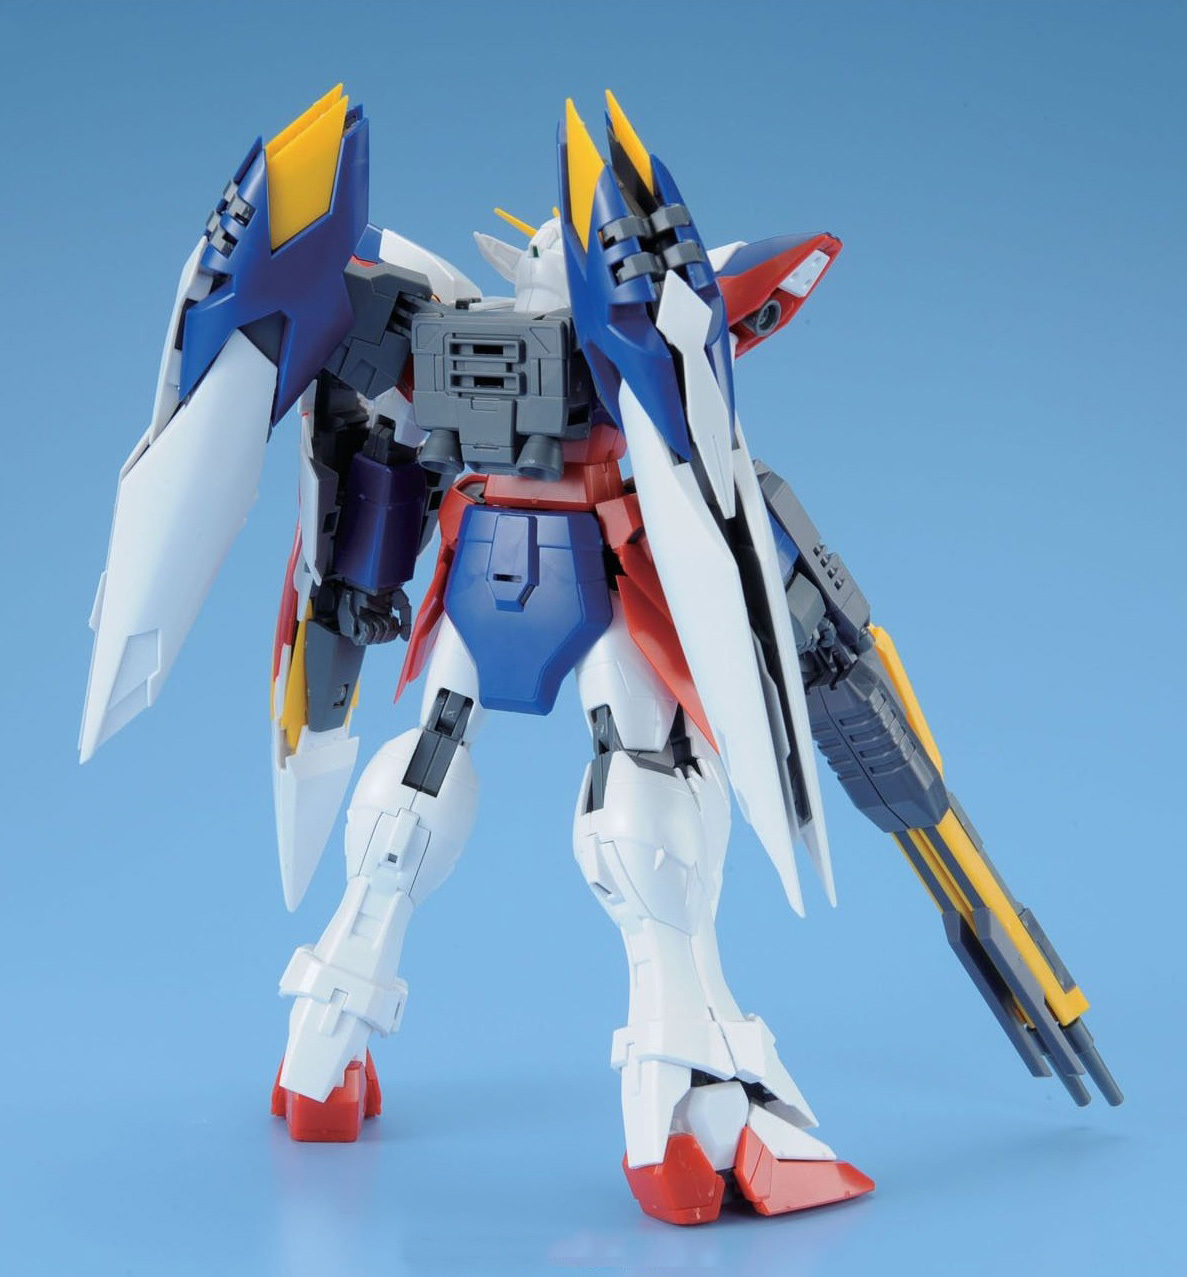 MG 1/100 Wing Gundam Proto Zero EW Ver. - Model Kit image